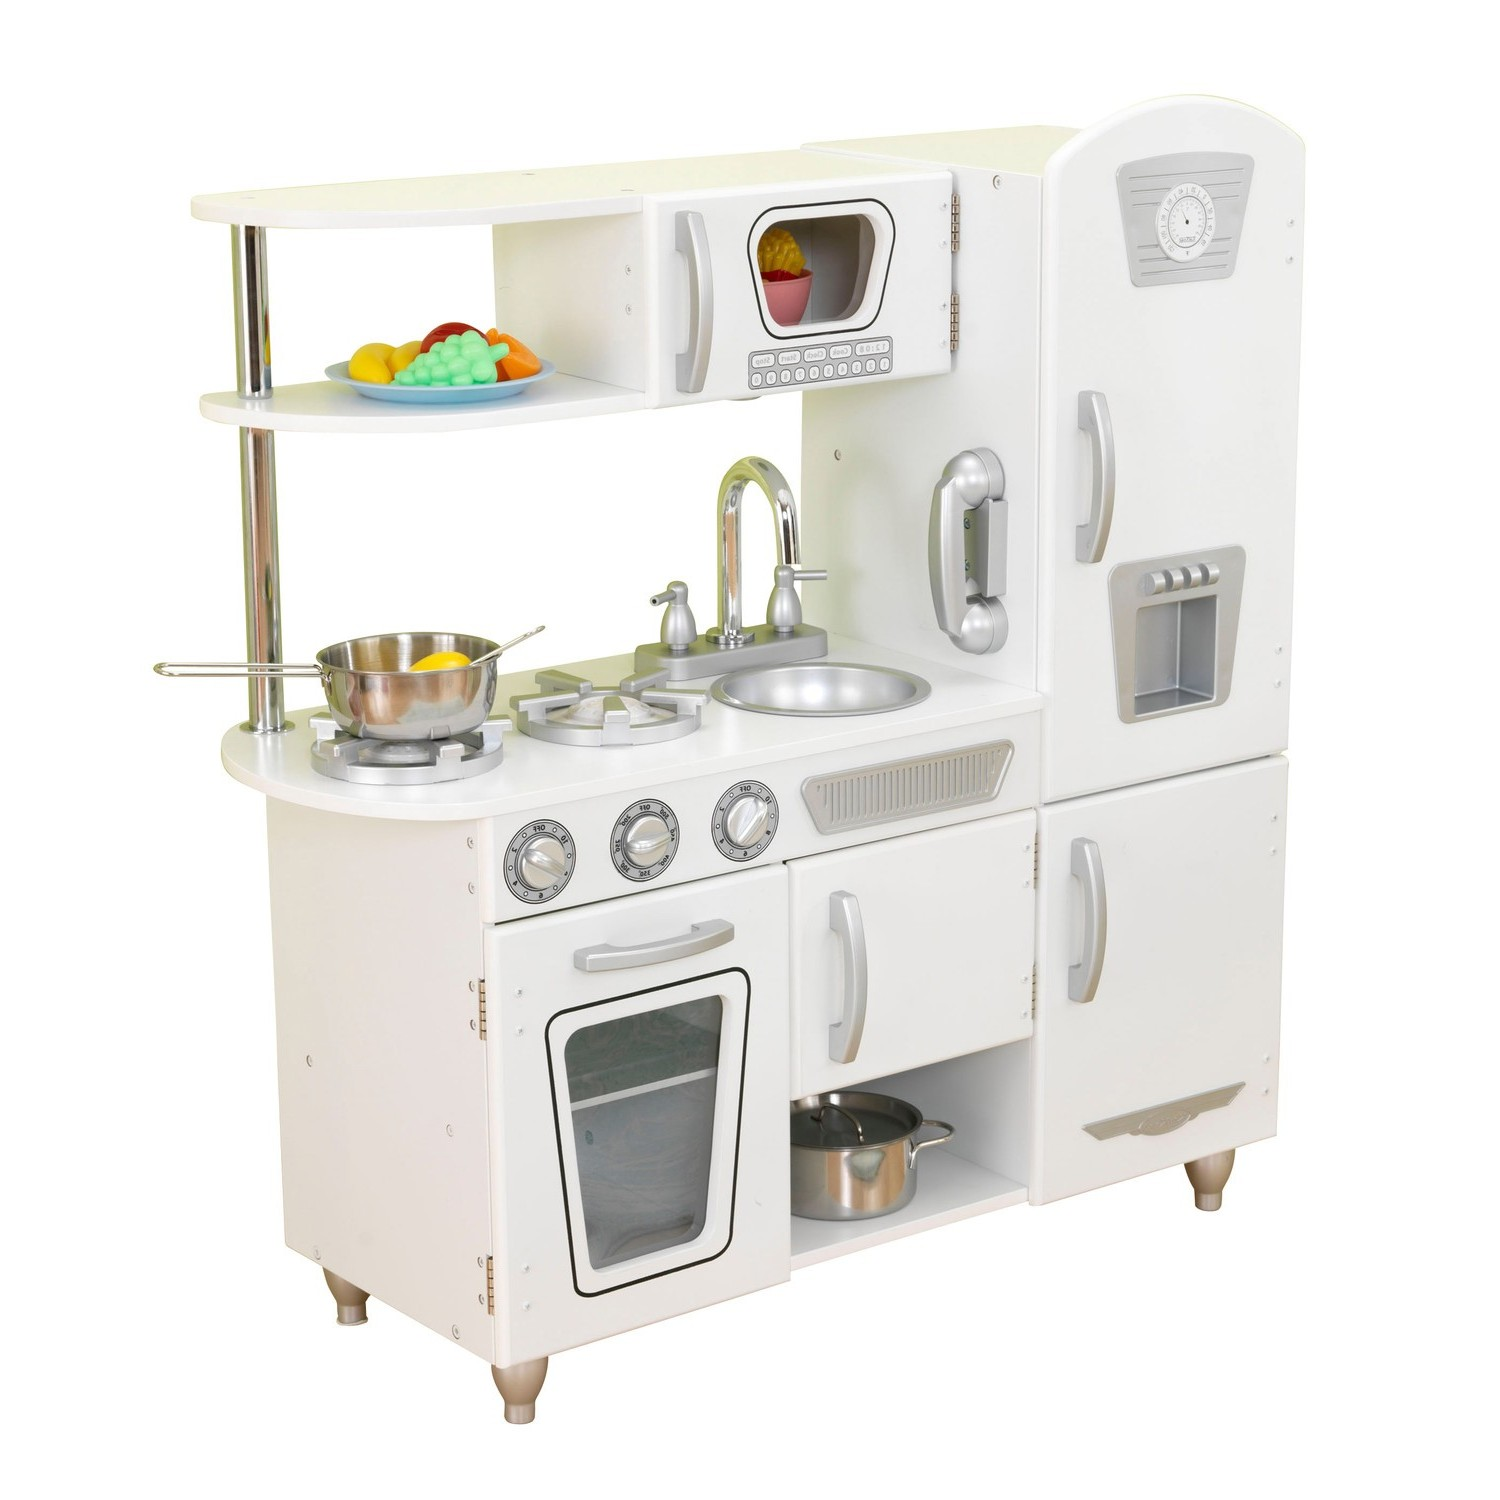 Kidkraft White Vintage Kitchen 53208 - Kitchen Remodel, Cabinet ...